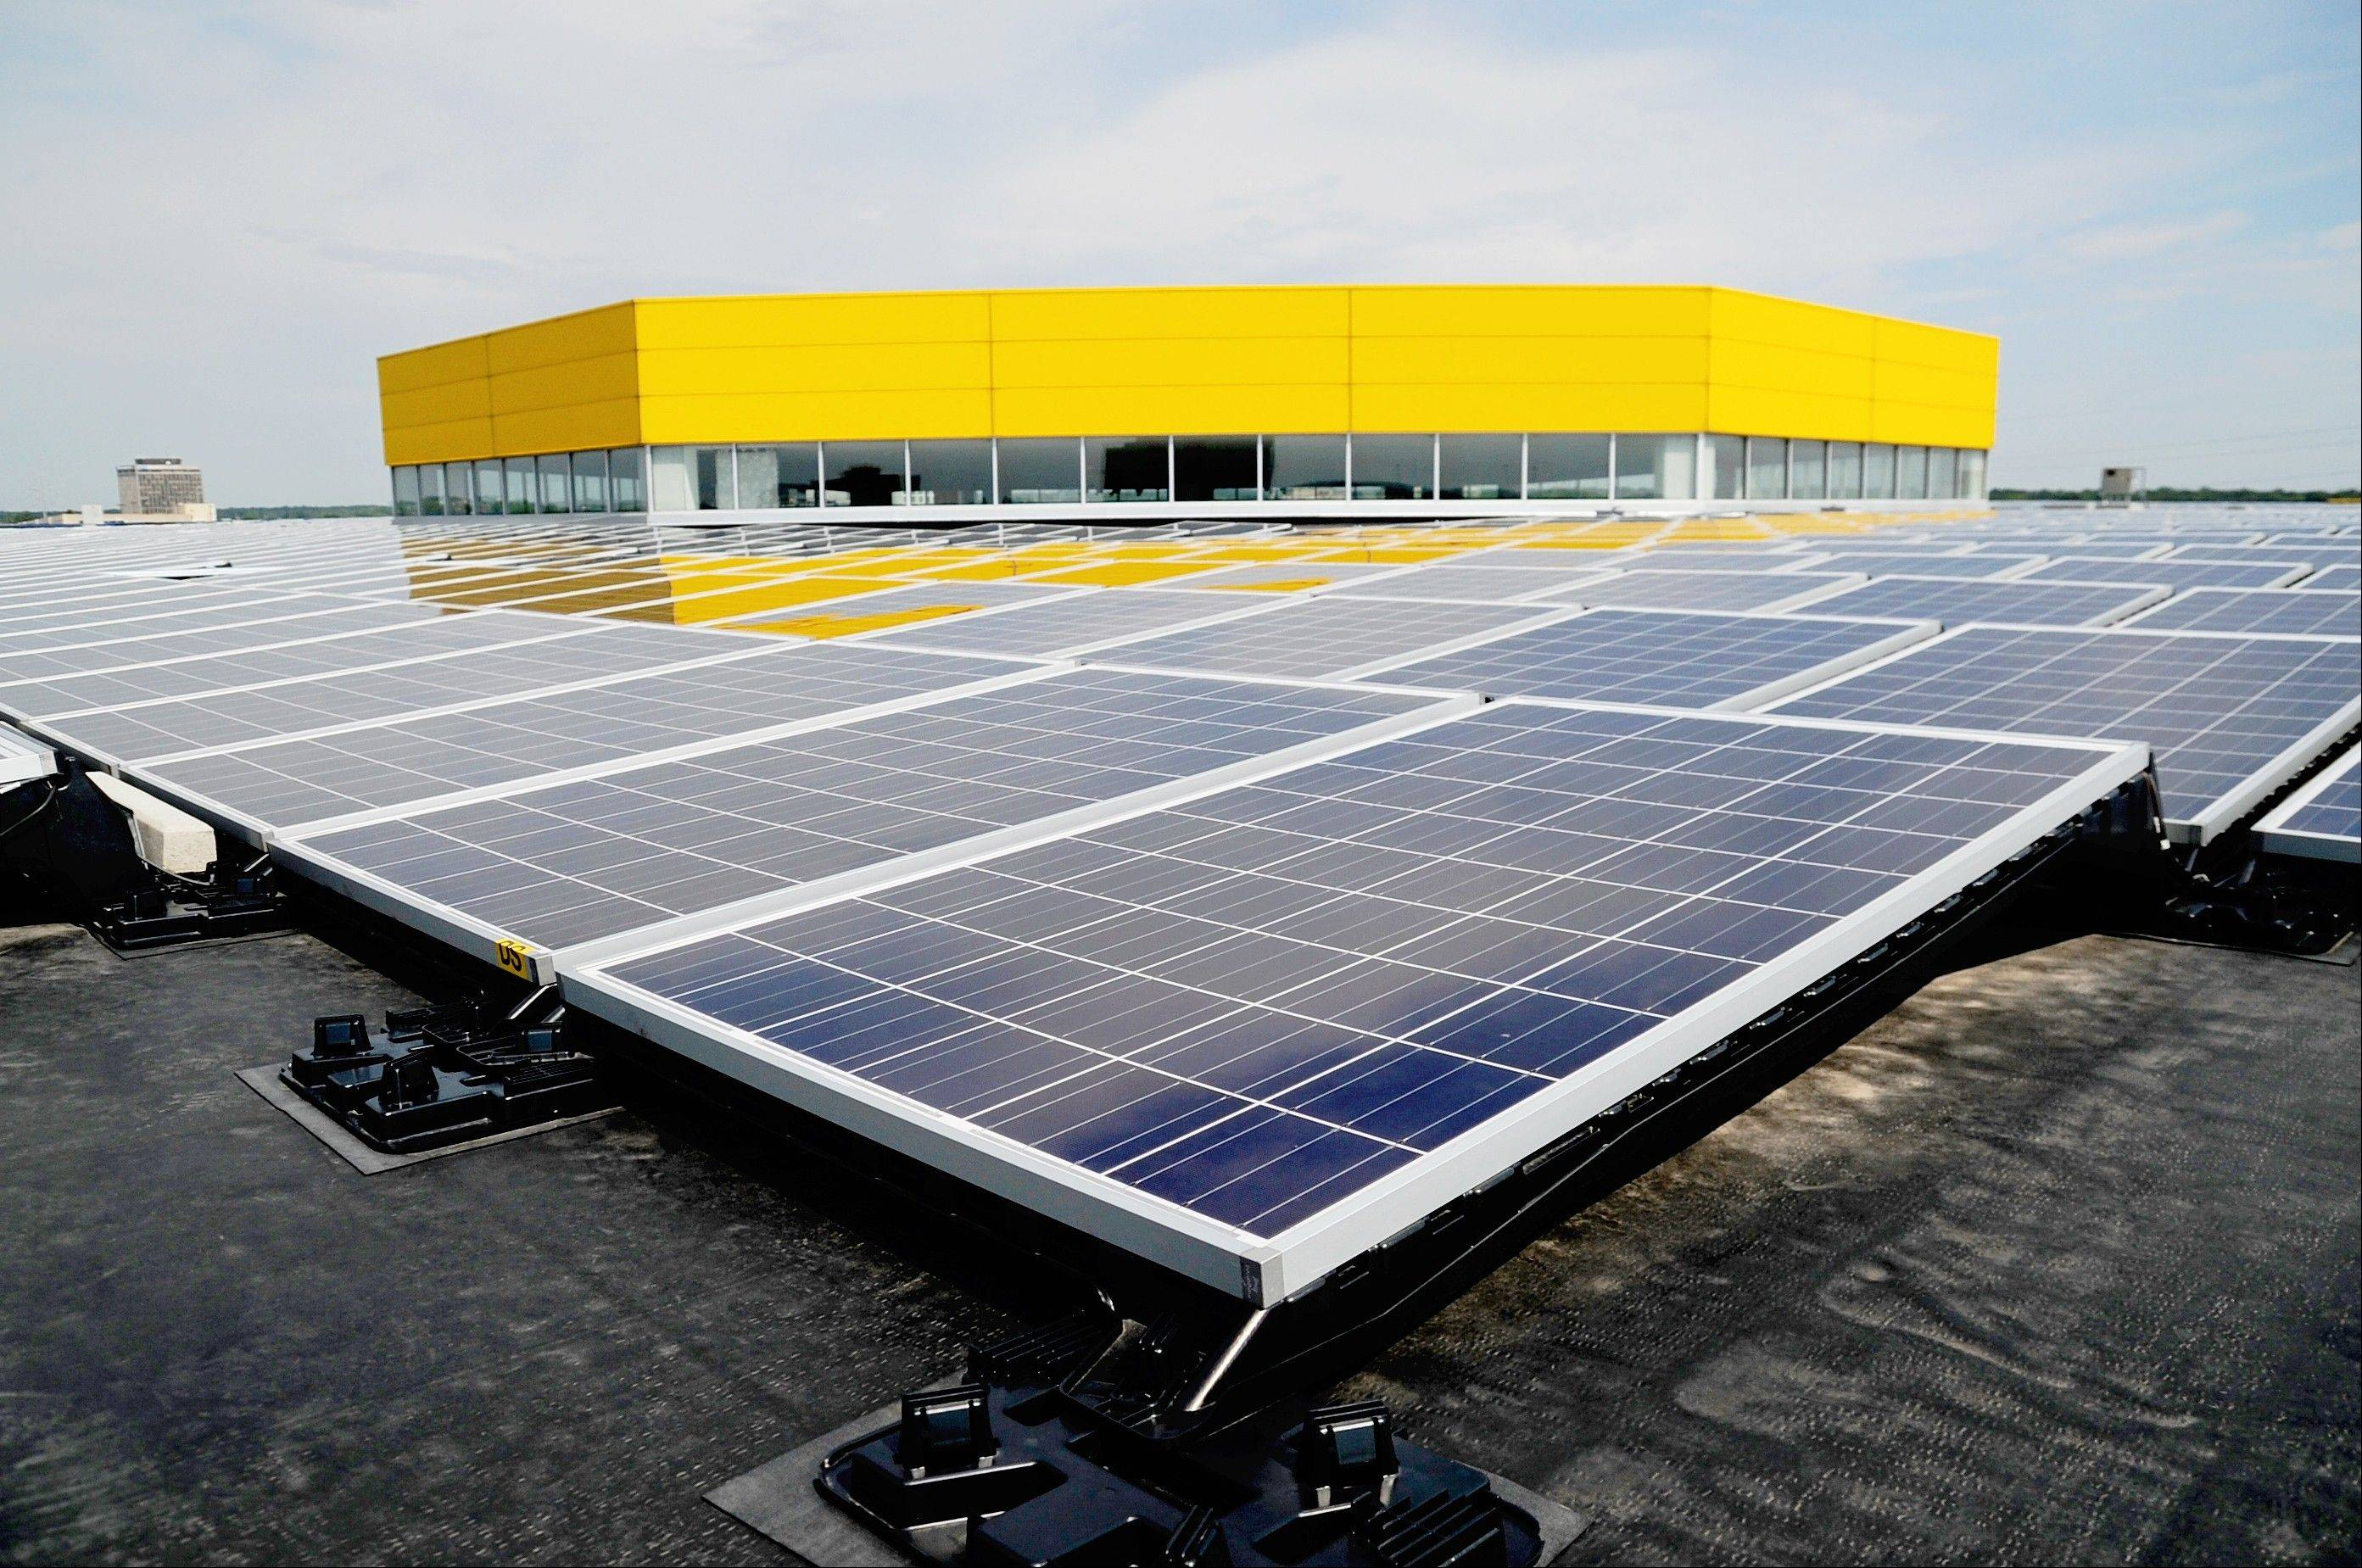 New solar panels have been installed on the rooftop of the Ikea in Schaumburg. Local officials and company executives gathered Wednesday to debut the new power system.